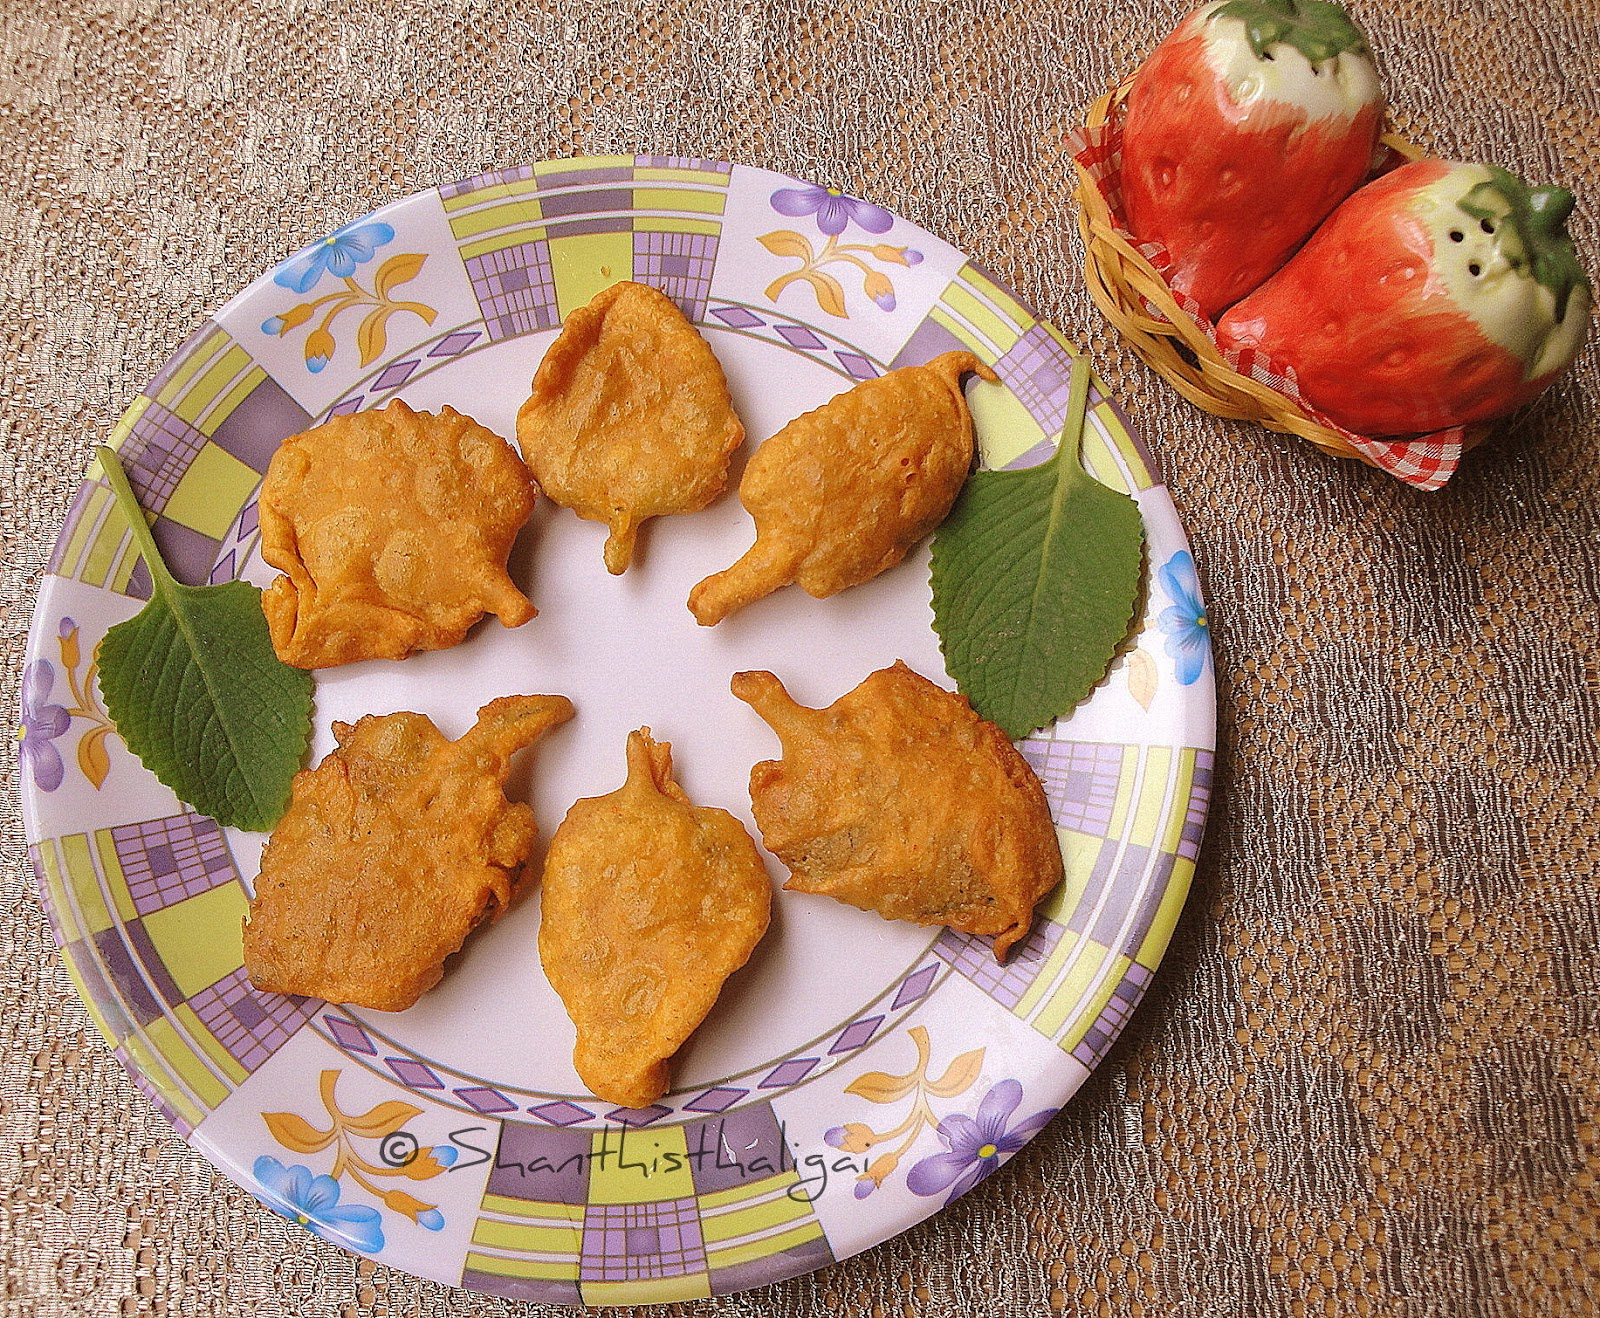 How to make omavalli leaves bajji, How to make ajwain leaves fritters